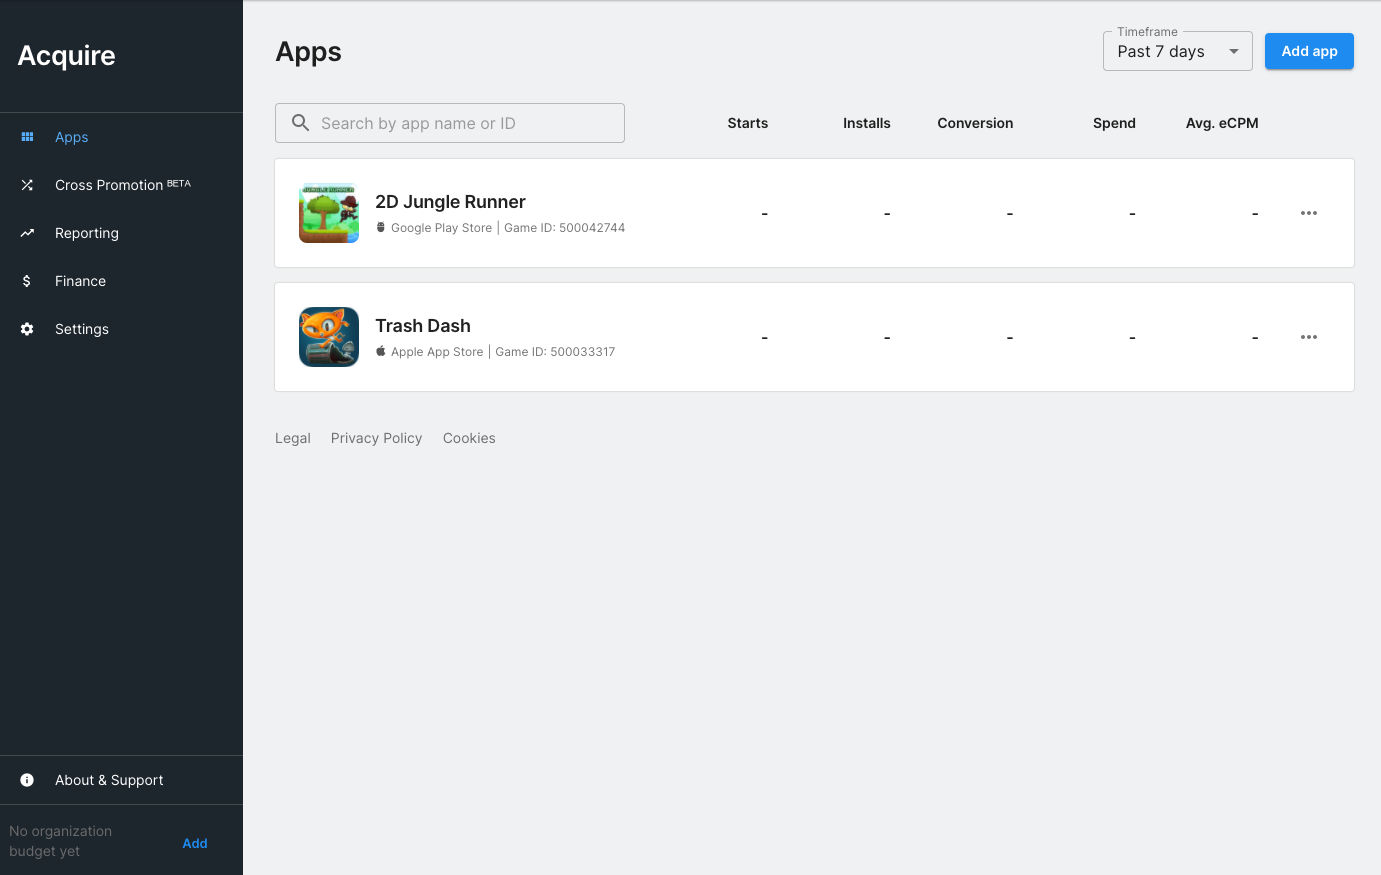 Creative Apps page